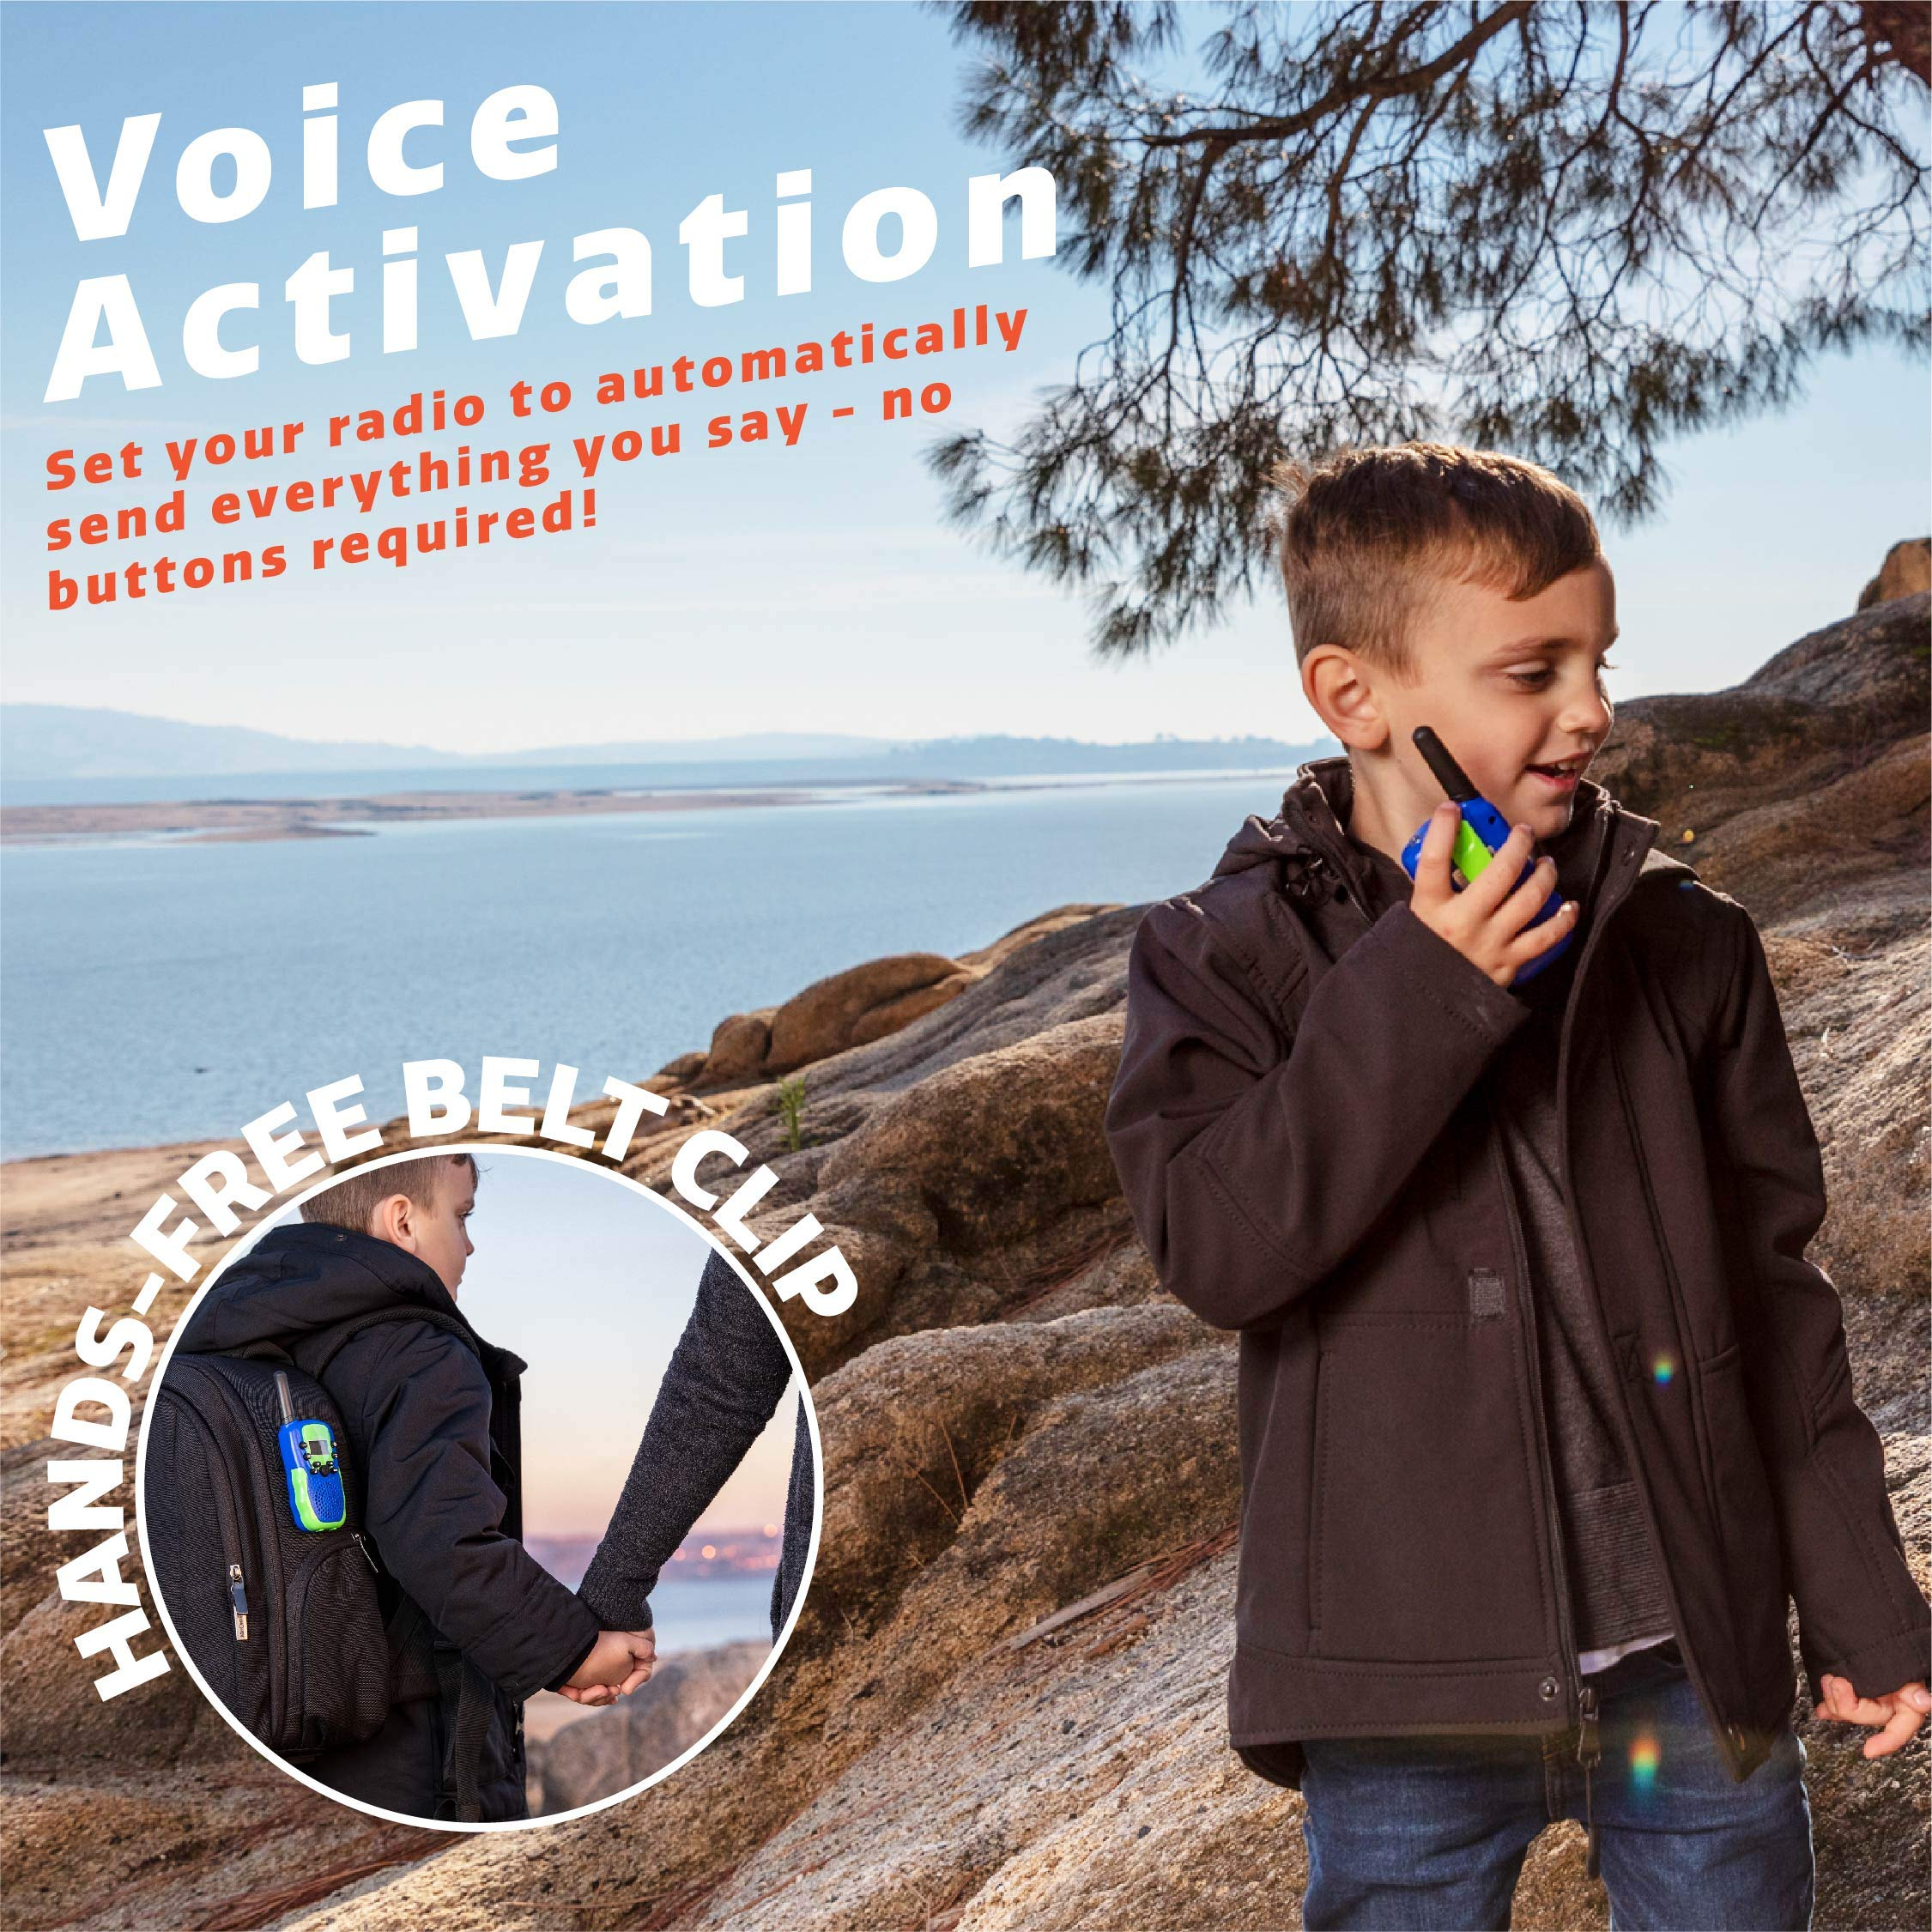 USA Toyz Walkie Talkies for Kids Vox Box Kids Walkie Talkies for Boys Or Girls, Voice Activated Long Range Outdoor Toys Walkie Talkie Set (Blue/Green) by USA Toyz (Image #3)